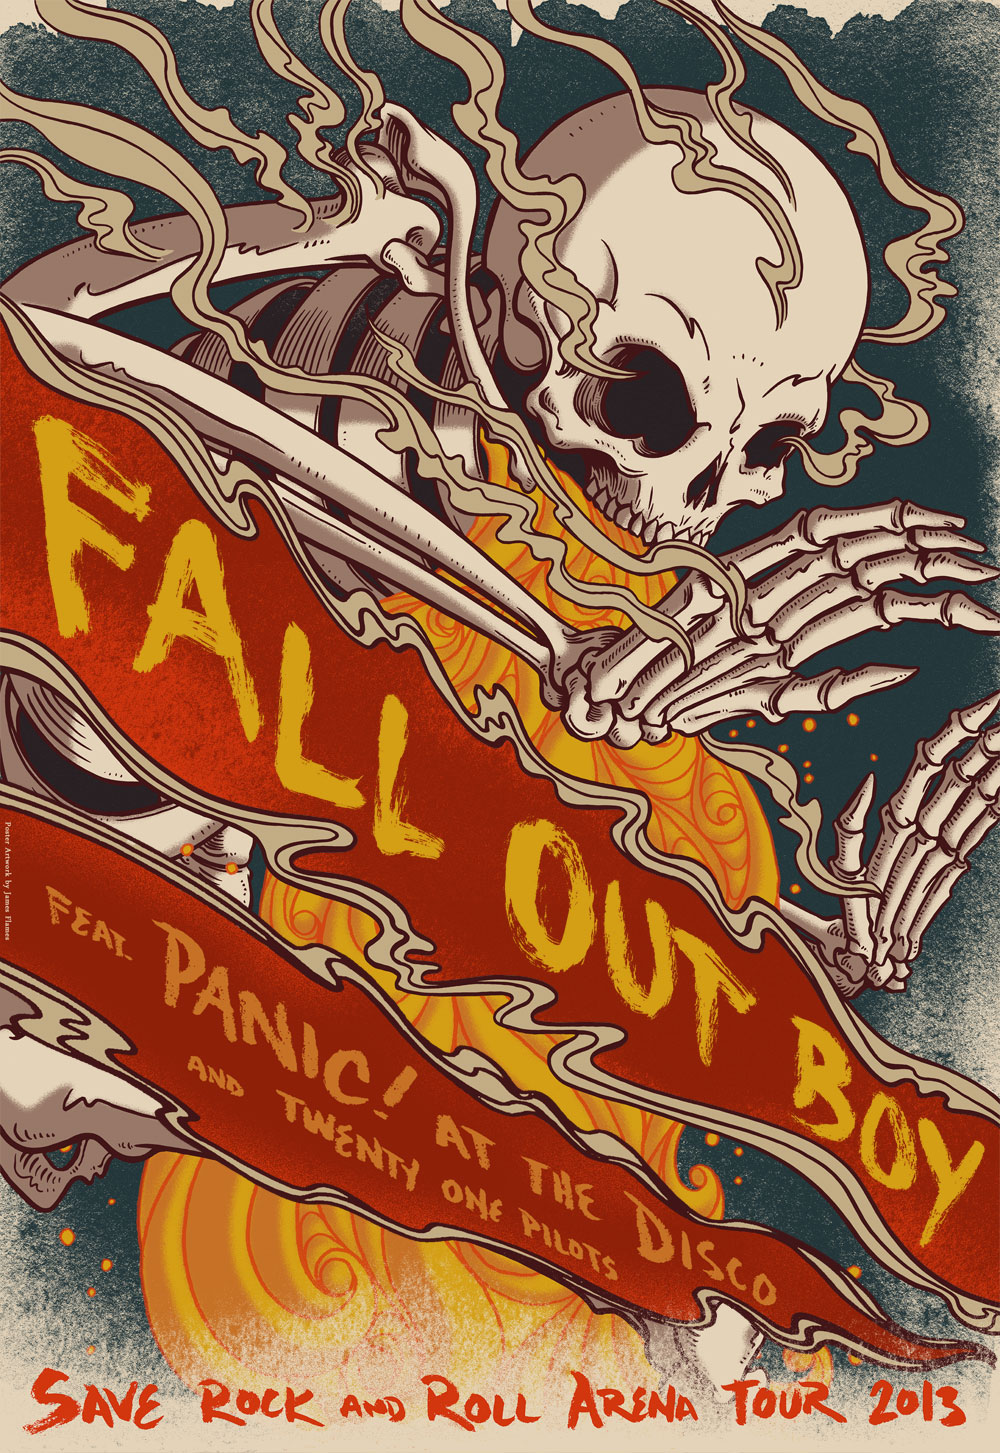 Fall Out Boy and Panic At The Disco tour | Alternative Press